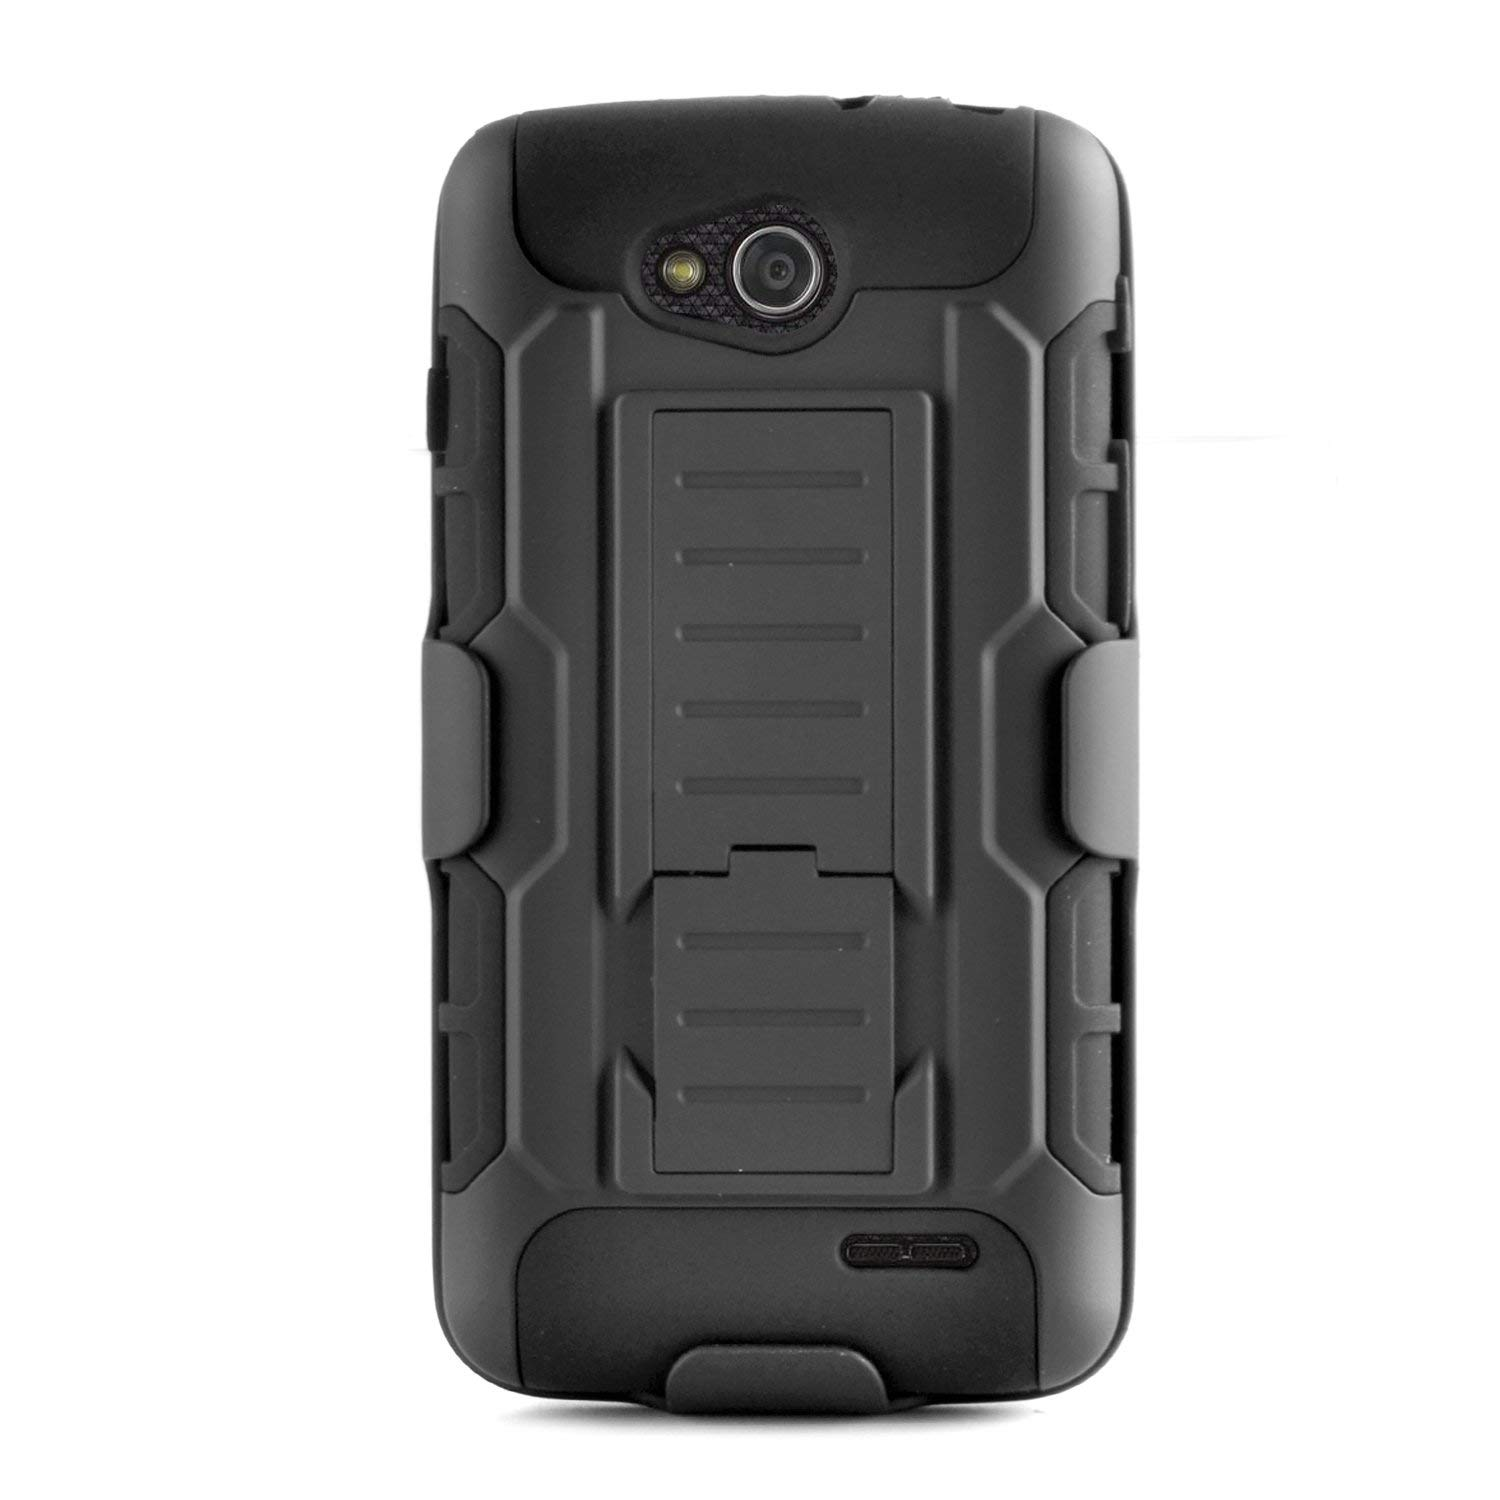 EagleCell - For LG L70 / Ultimate 2 L41C / Exceed 2 / Realm LS620 - Hybrid Protective Skin Case Cover with Stand and Belt Clip Holster - Black/Black